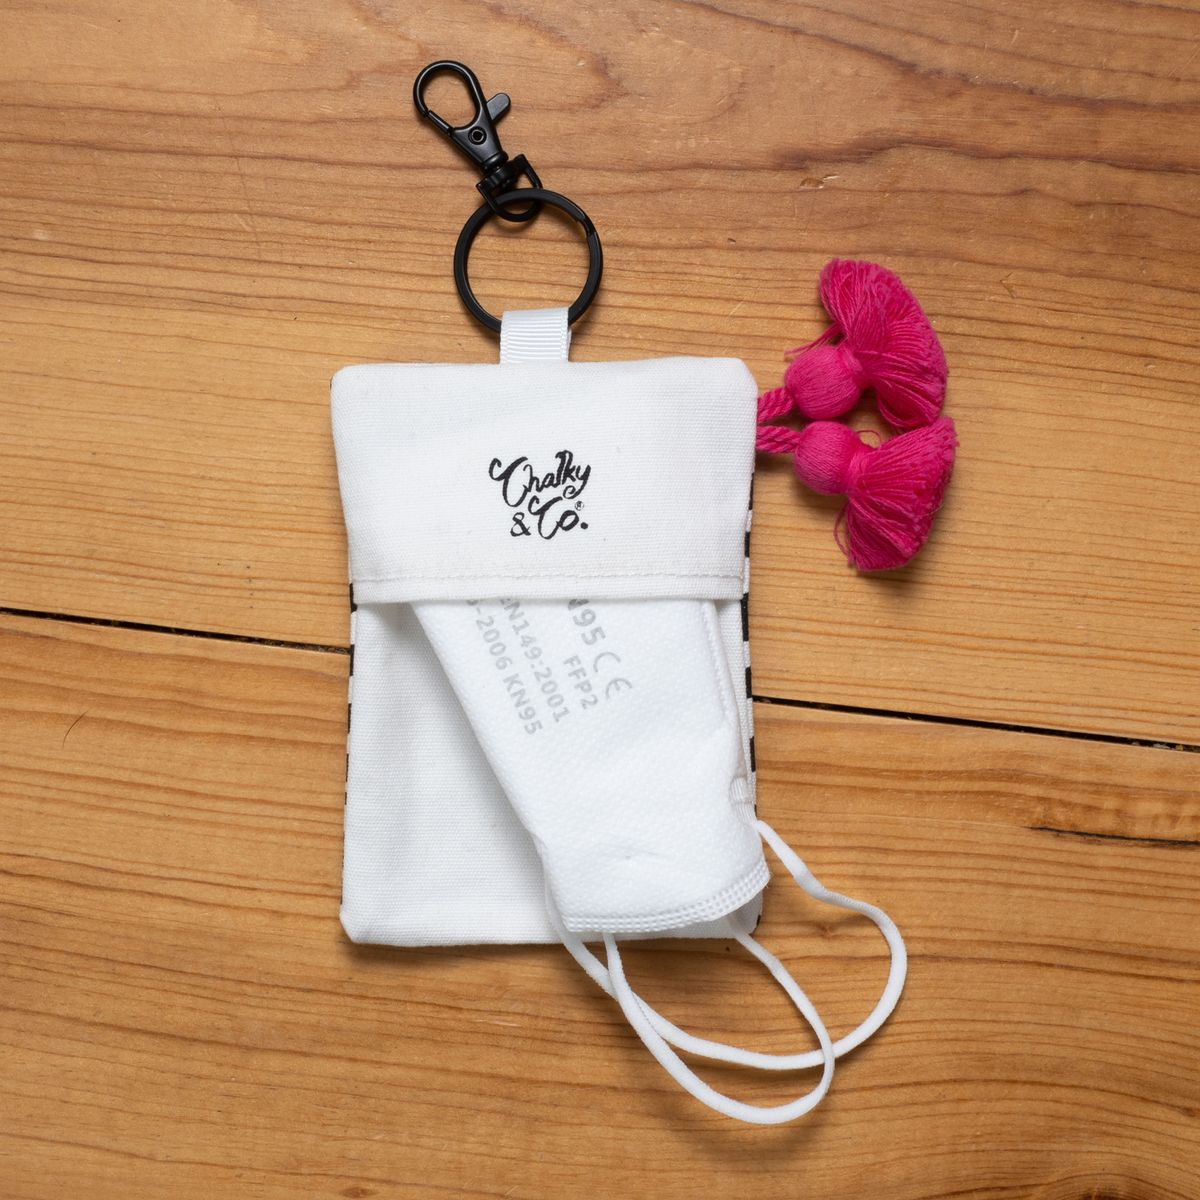 Chalky & Co. Mini Mask Bags